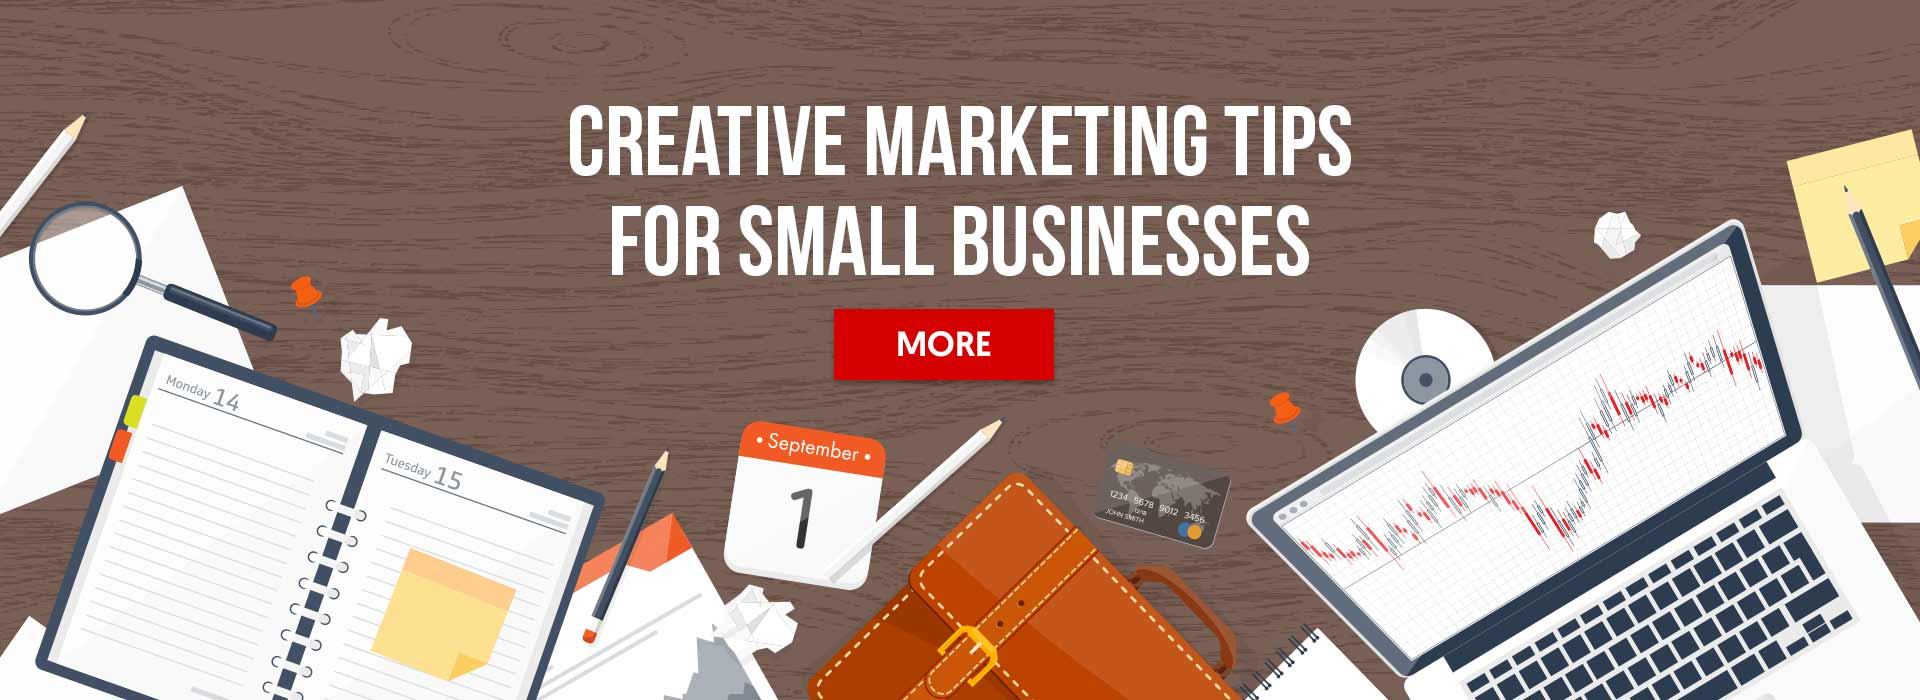 Creative Marketing Tips for Small Businesses